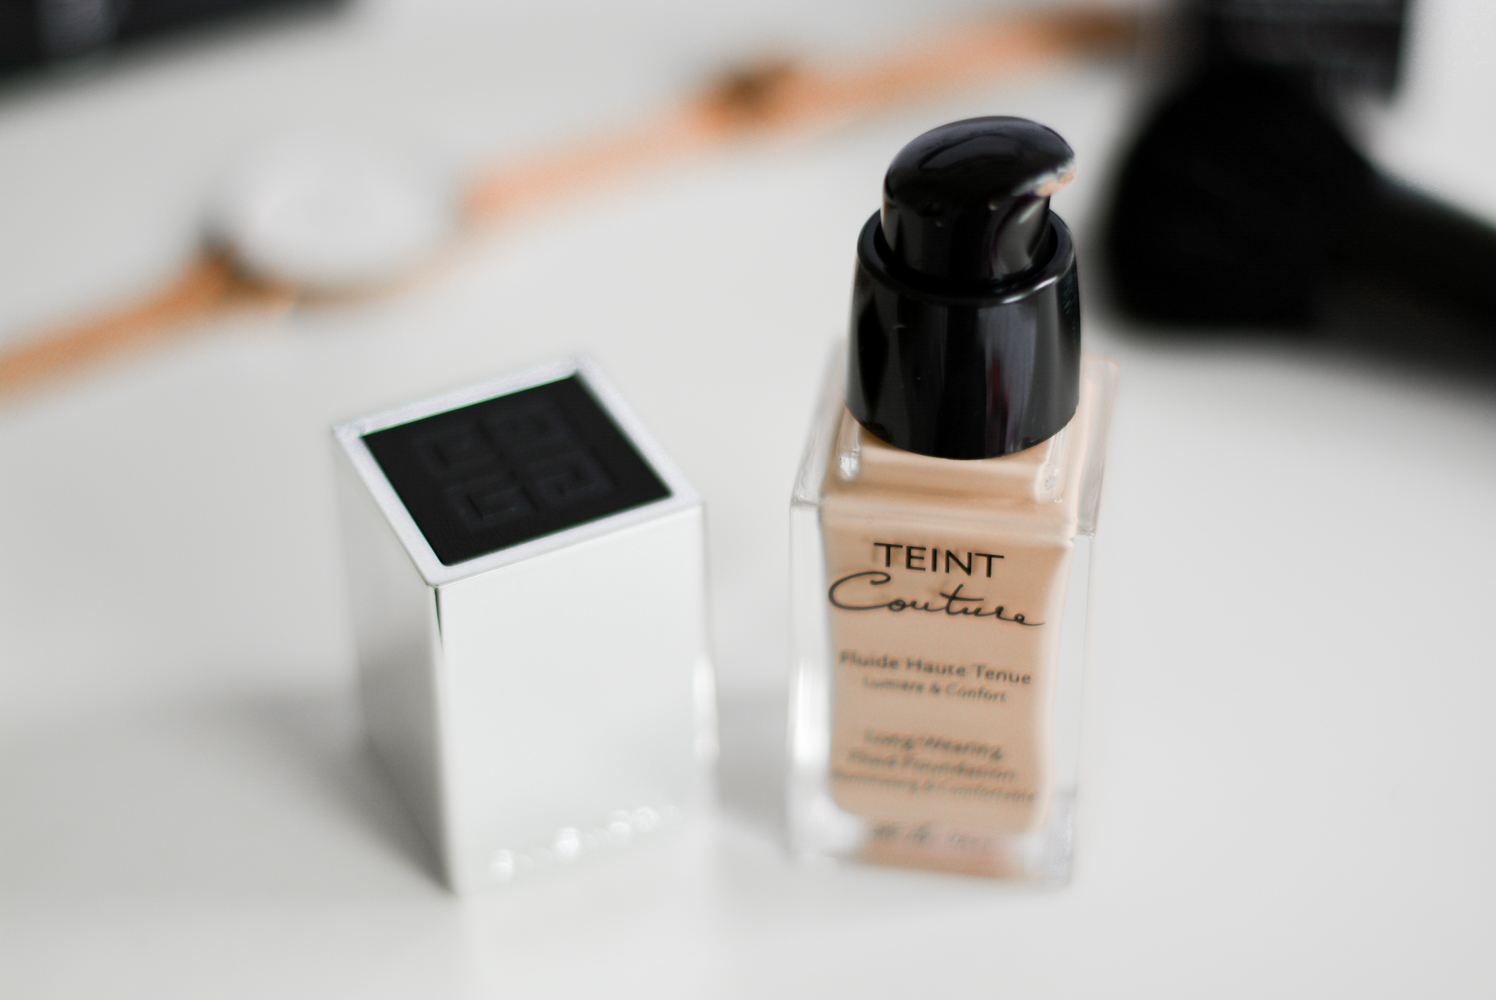 givenchy-teint-couture-fluid.jpg